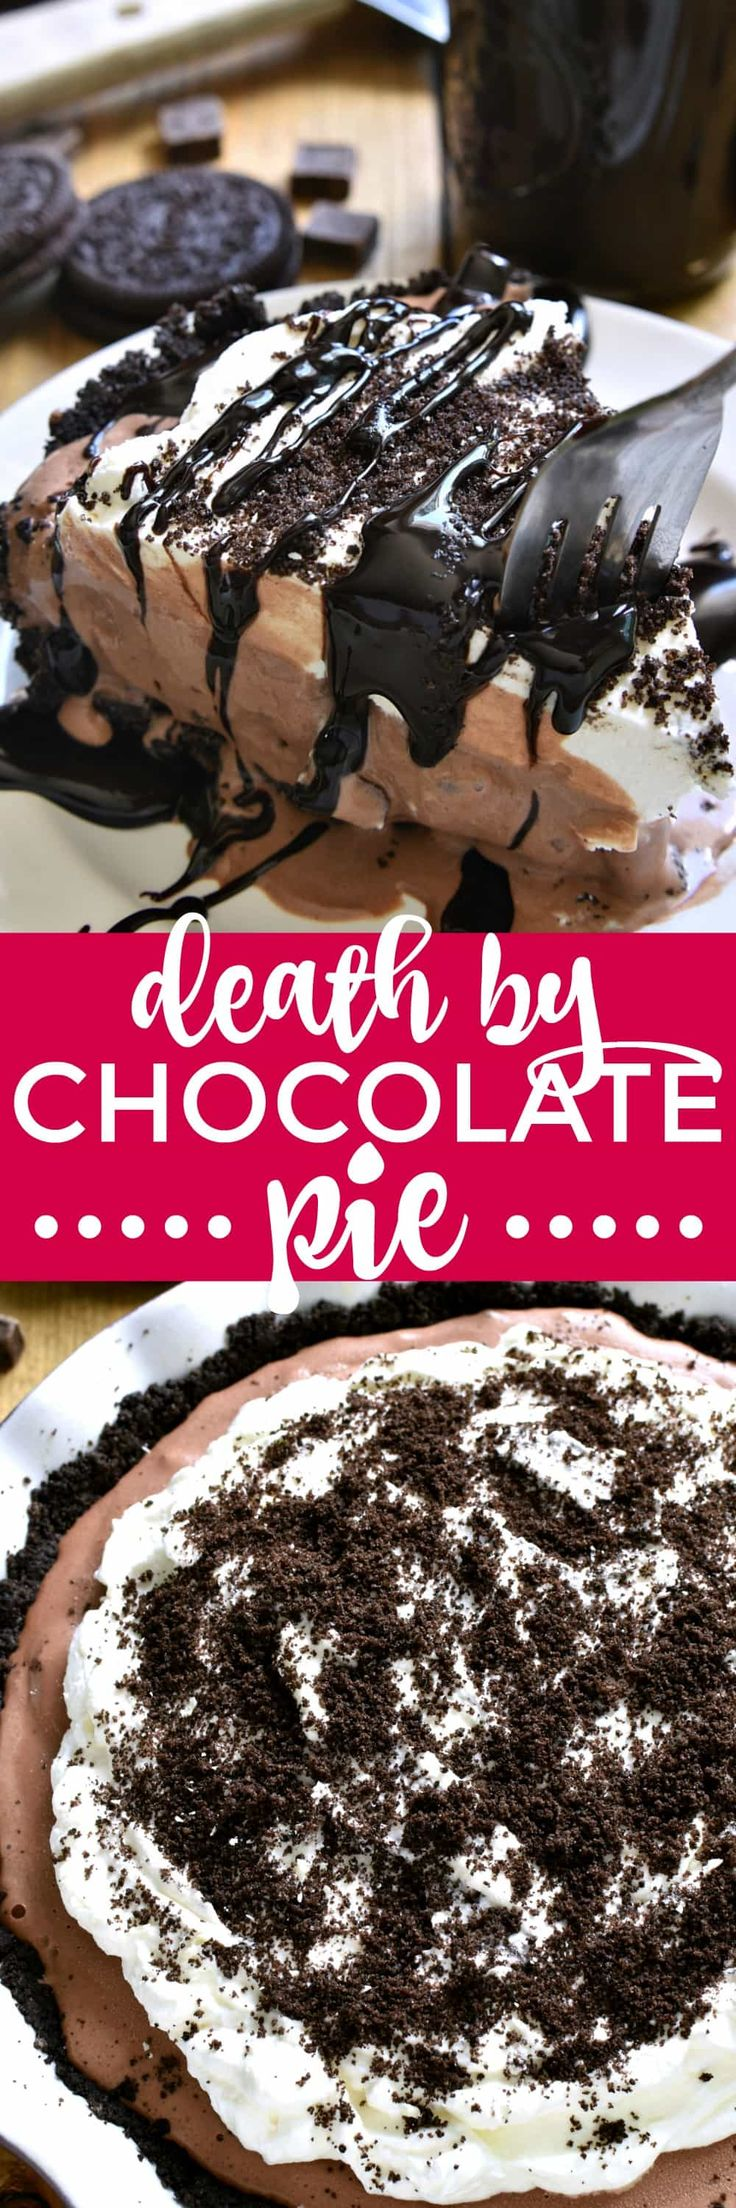 Frozen Death by Chocolate Pie | Lemon Tree Dwelling | this is the ULTIMATE chocolate lover's treat! Loaded with delicious chocolate flavor and topped with homemade whipped cream and hot fudge, this pie is perfect for birthdays, ladies nights, or special occasions. And best of all, it's completely no-bake!